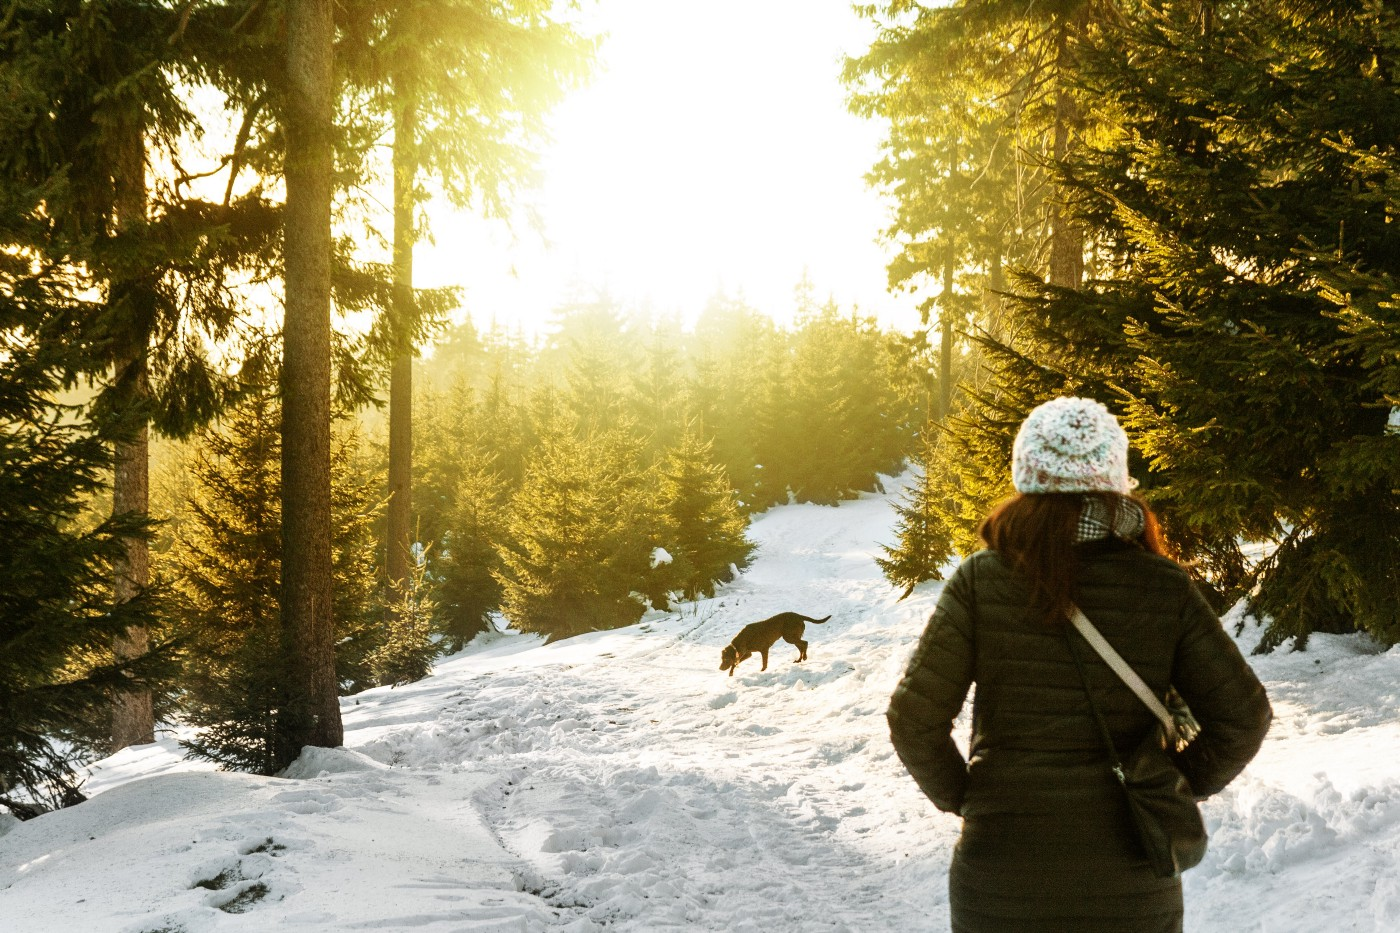 A woman walking her dog in snowy woods